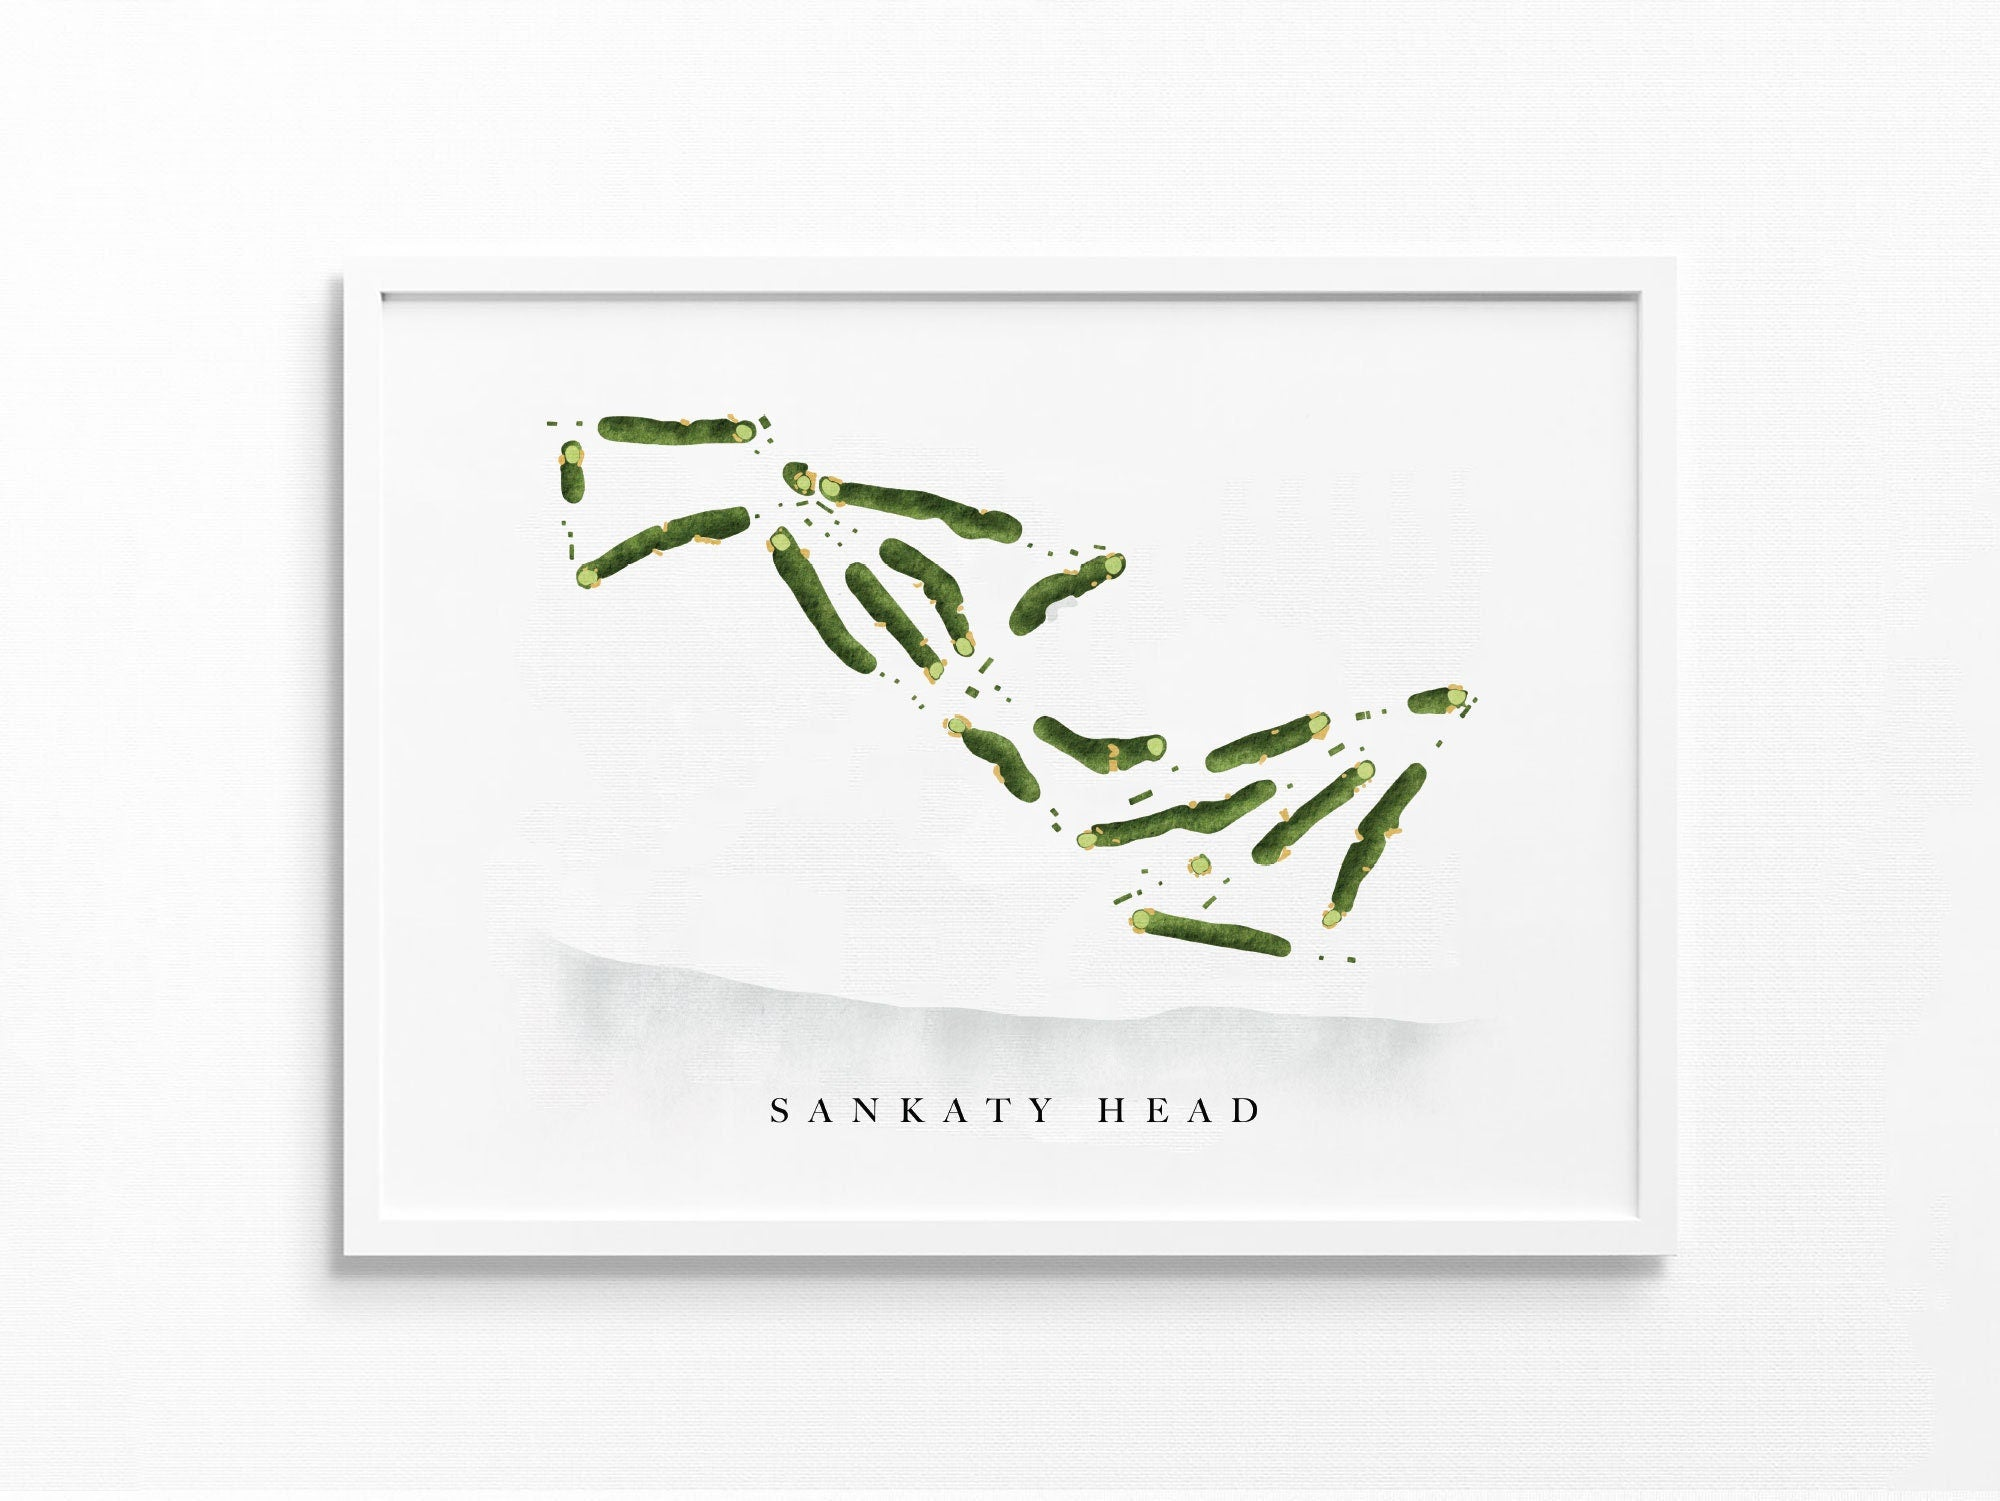 Sankaty Head Golf Club | Siasconset, MA | Golf Course Map, Golfer Decor Gift, Scorecard Layout | Watercolor-style Print UNFRAMED